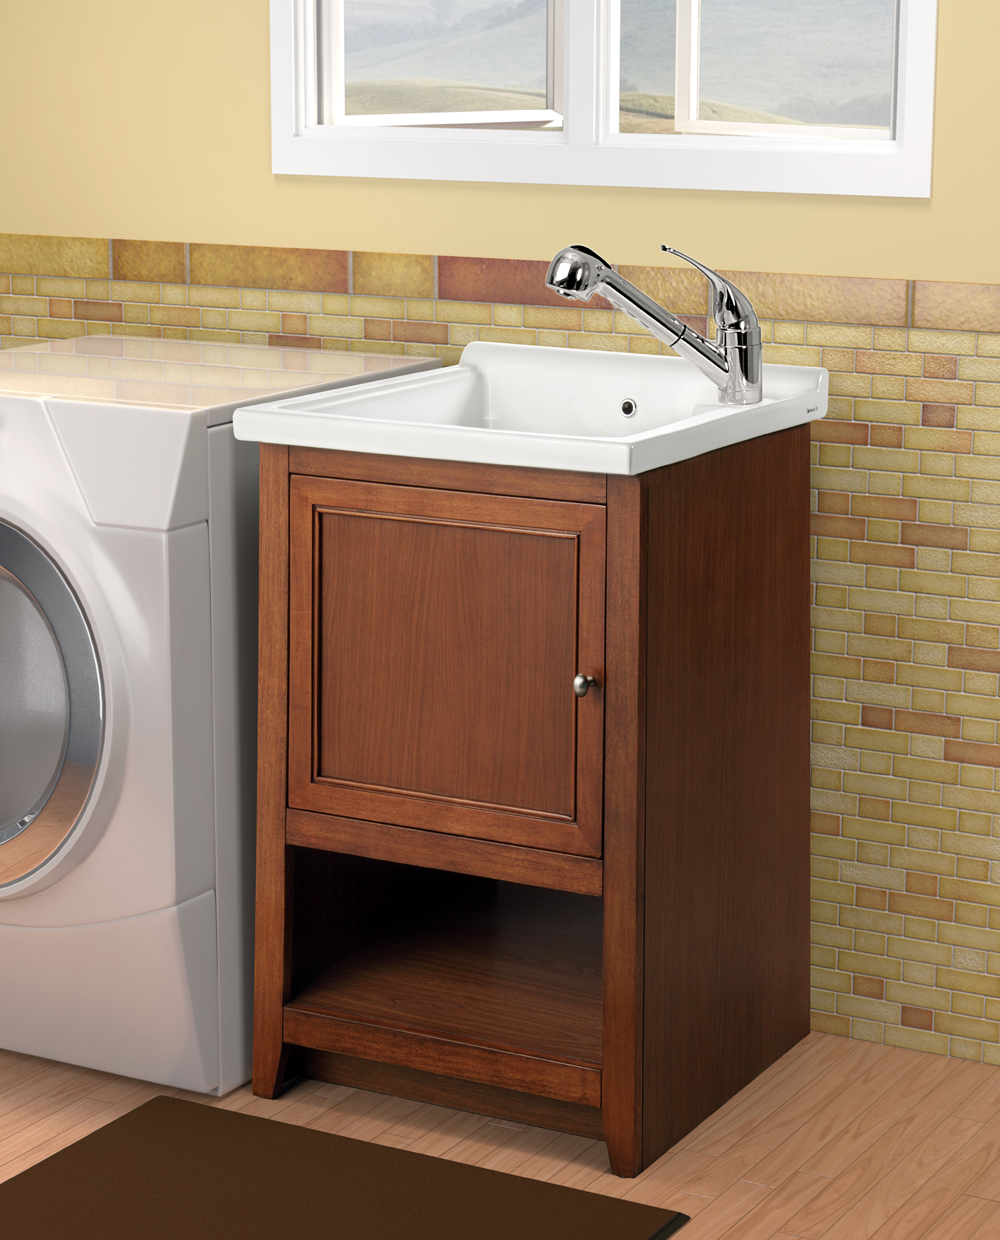 Laundry Cabinet Designs By Shannon Rooney At